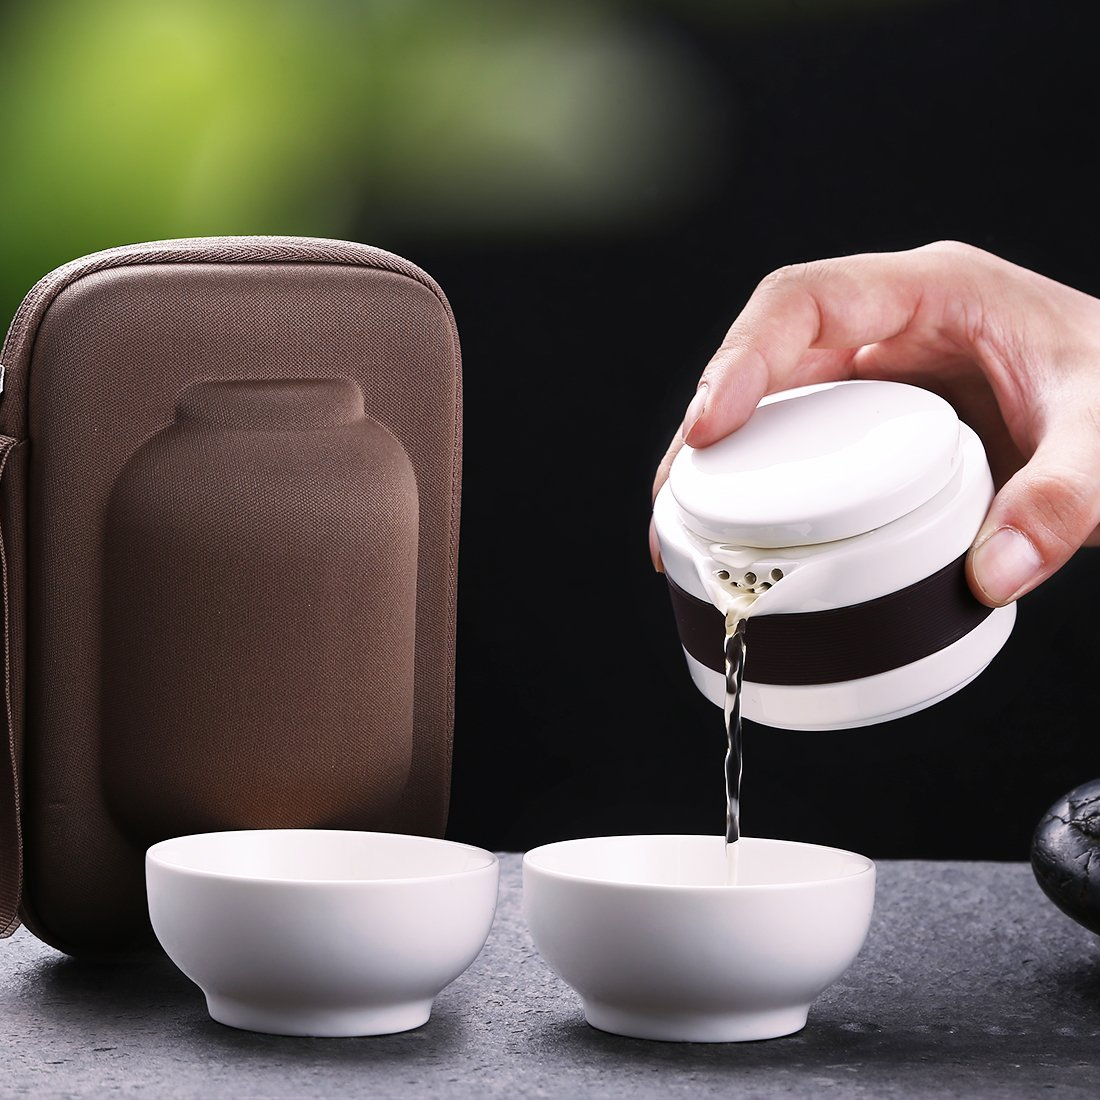 China Travel Ceramic Tea Sets Kung Fu Tea Pot with Bag Travel Teapots Teacups Outdoor Mini